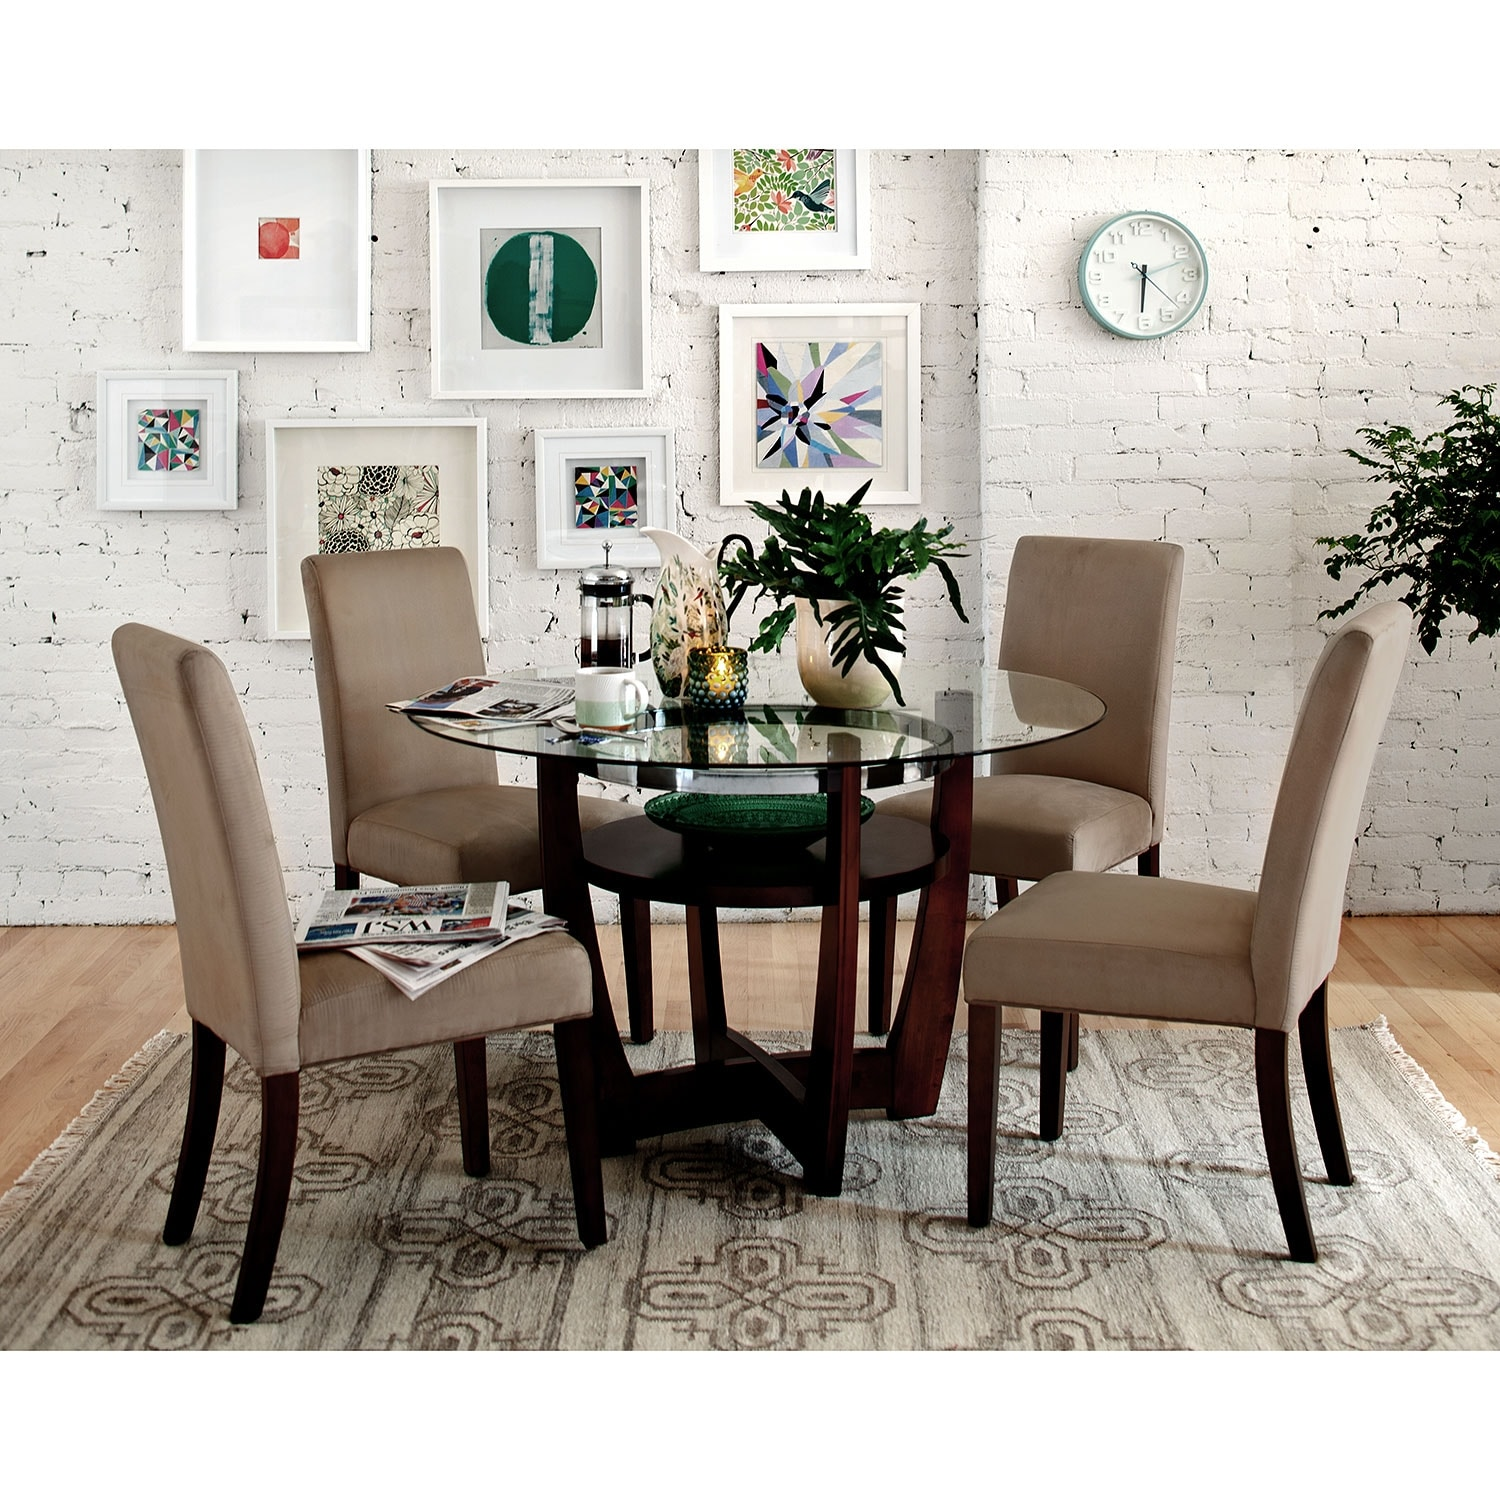 Furniture City Dining Room Suites: Alcove Table - Merlot